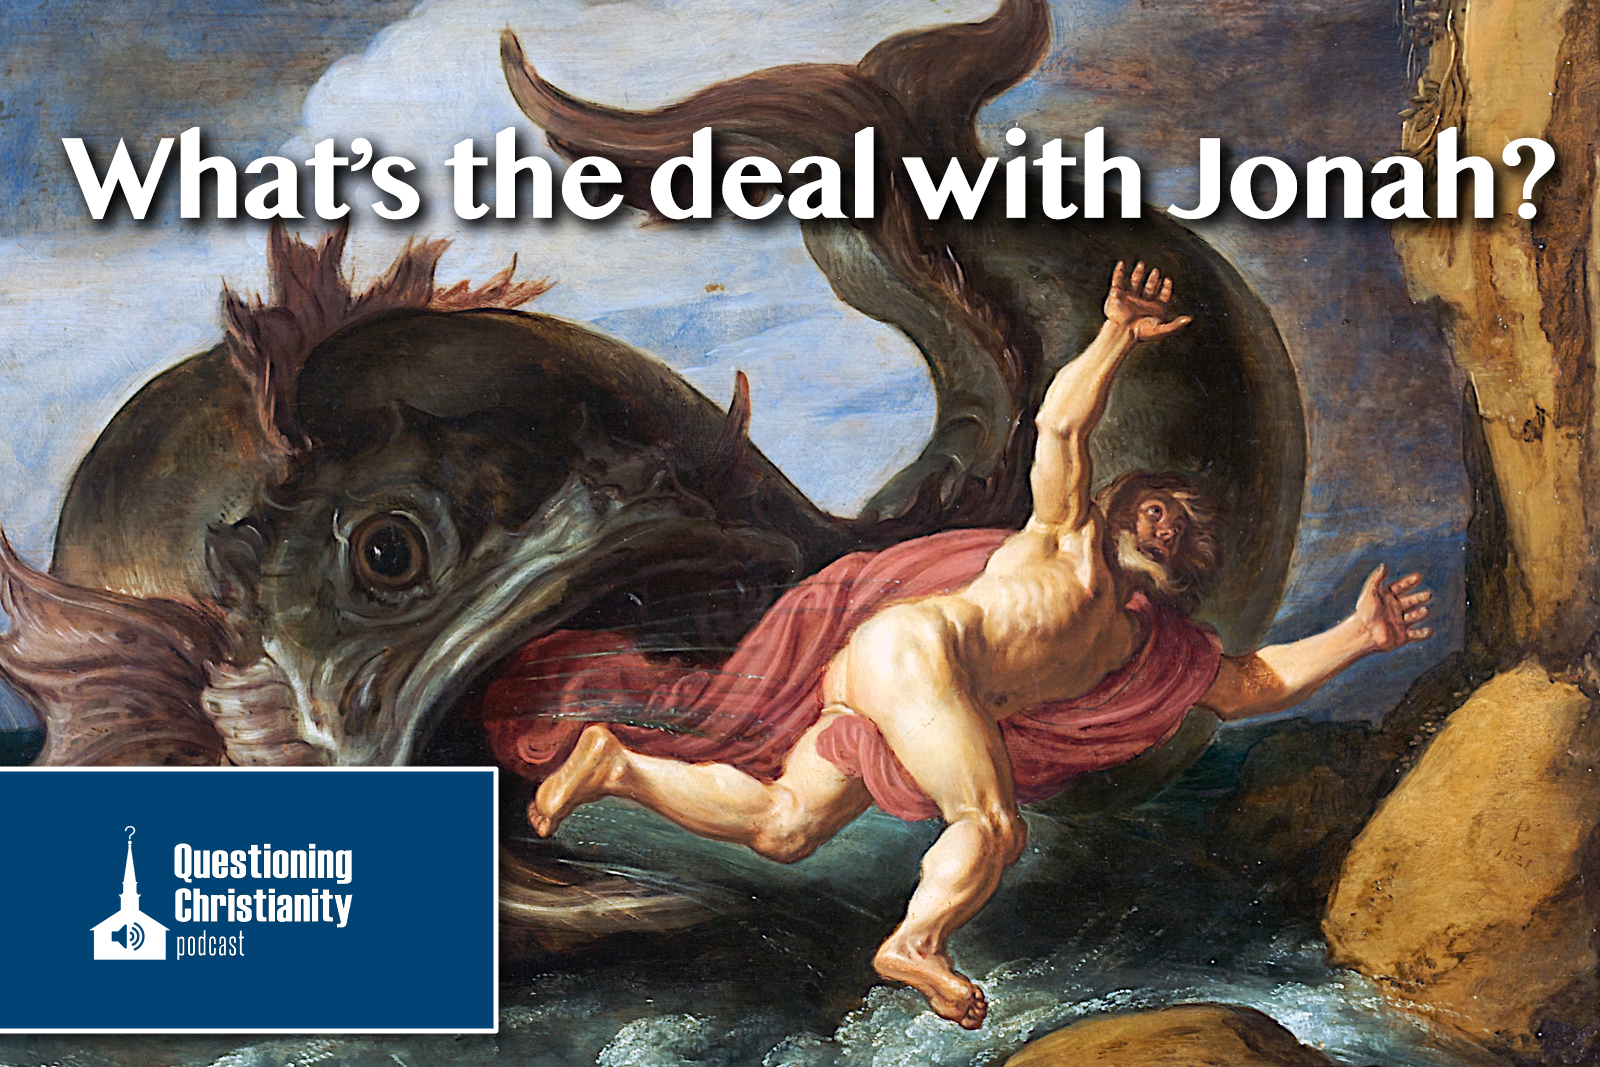 Questioning Christianity Podcast - What's the deal with Jonah?